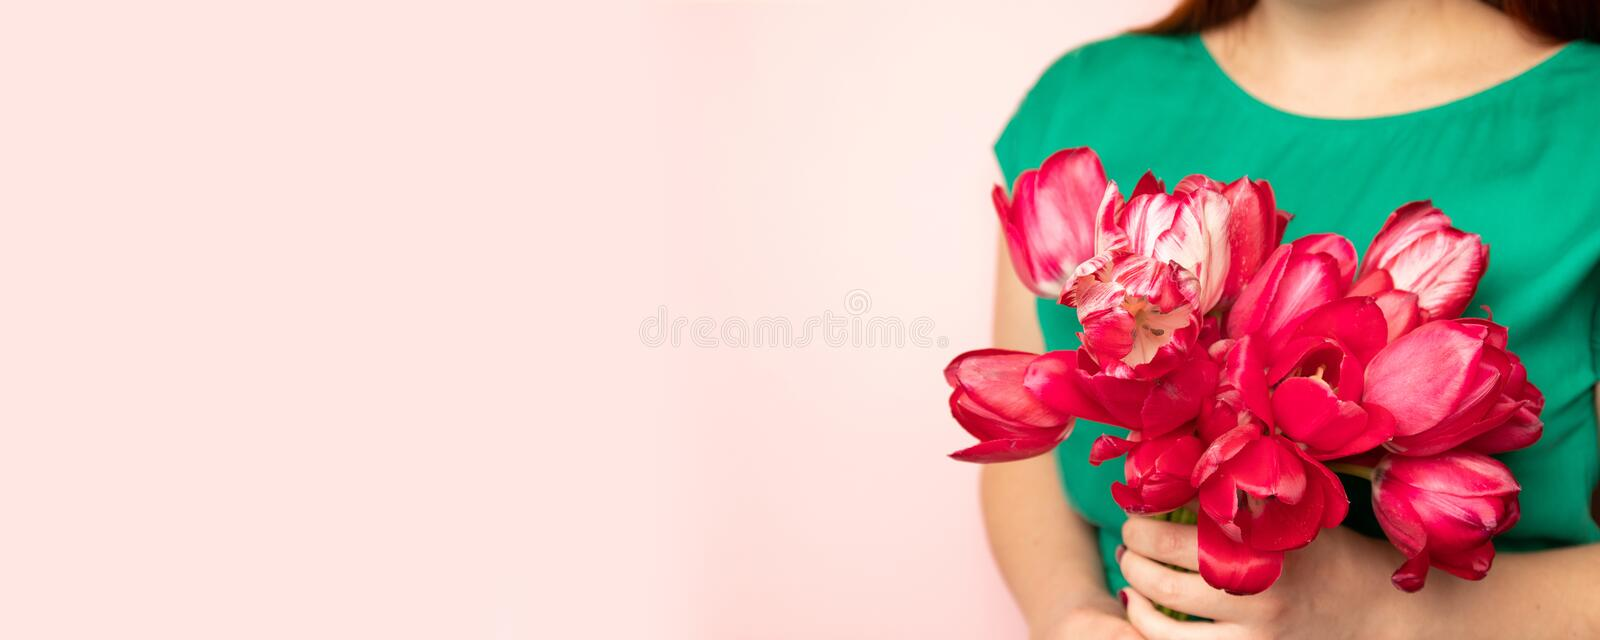 Beautiful girl in the green dress with flowers tulips in hands on pink background stock photo